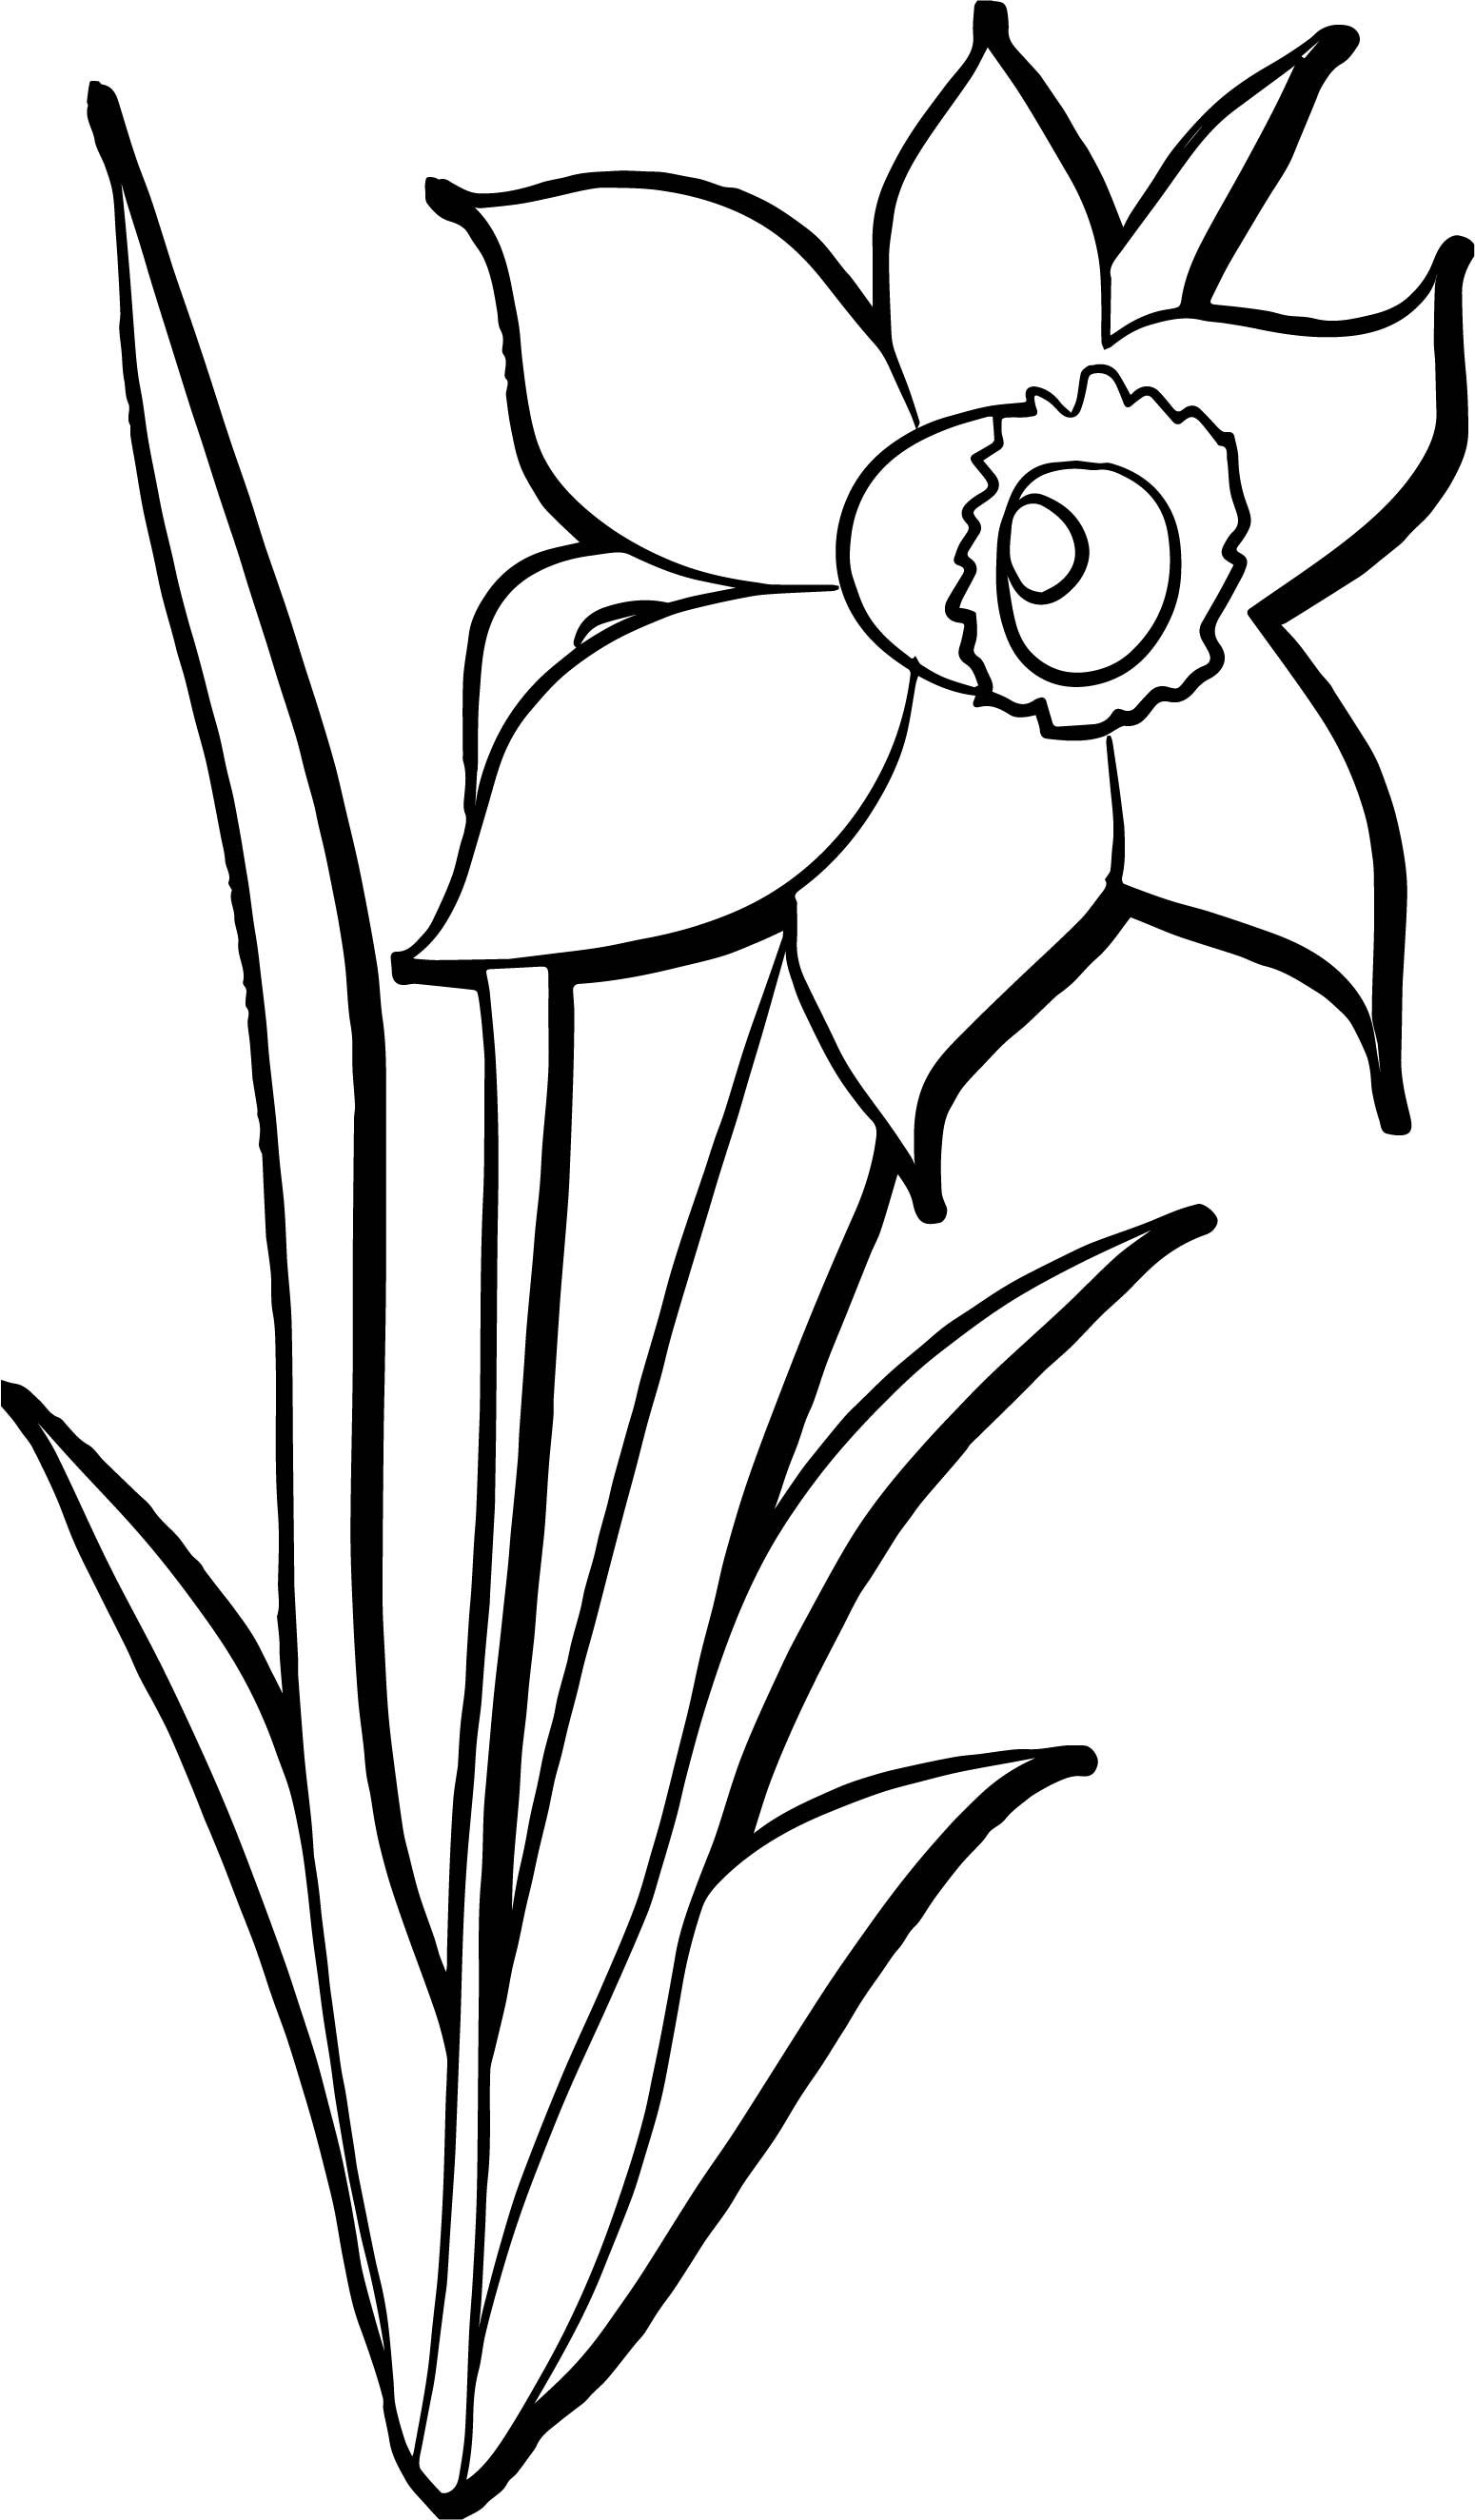 April Showers Bring May Flowers Coloring Page